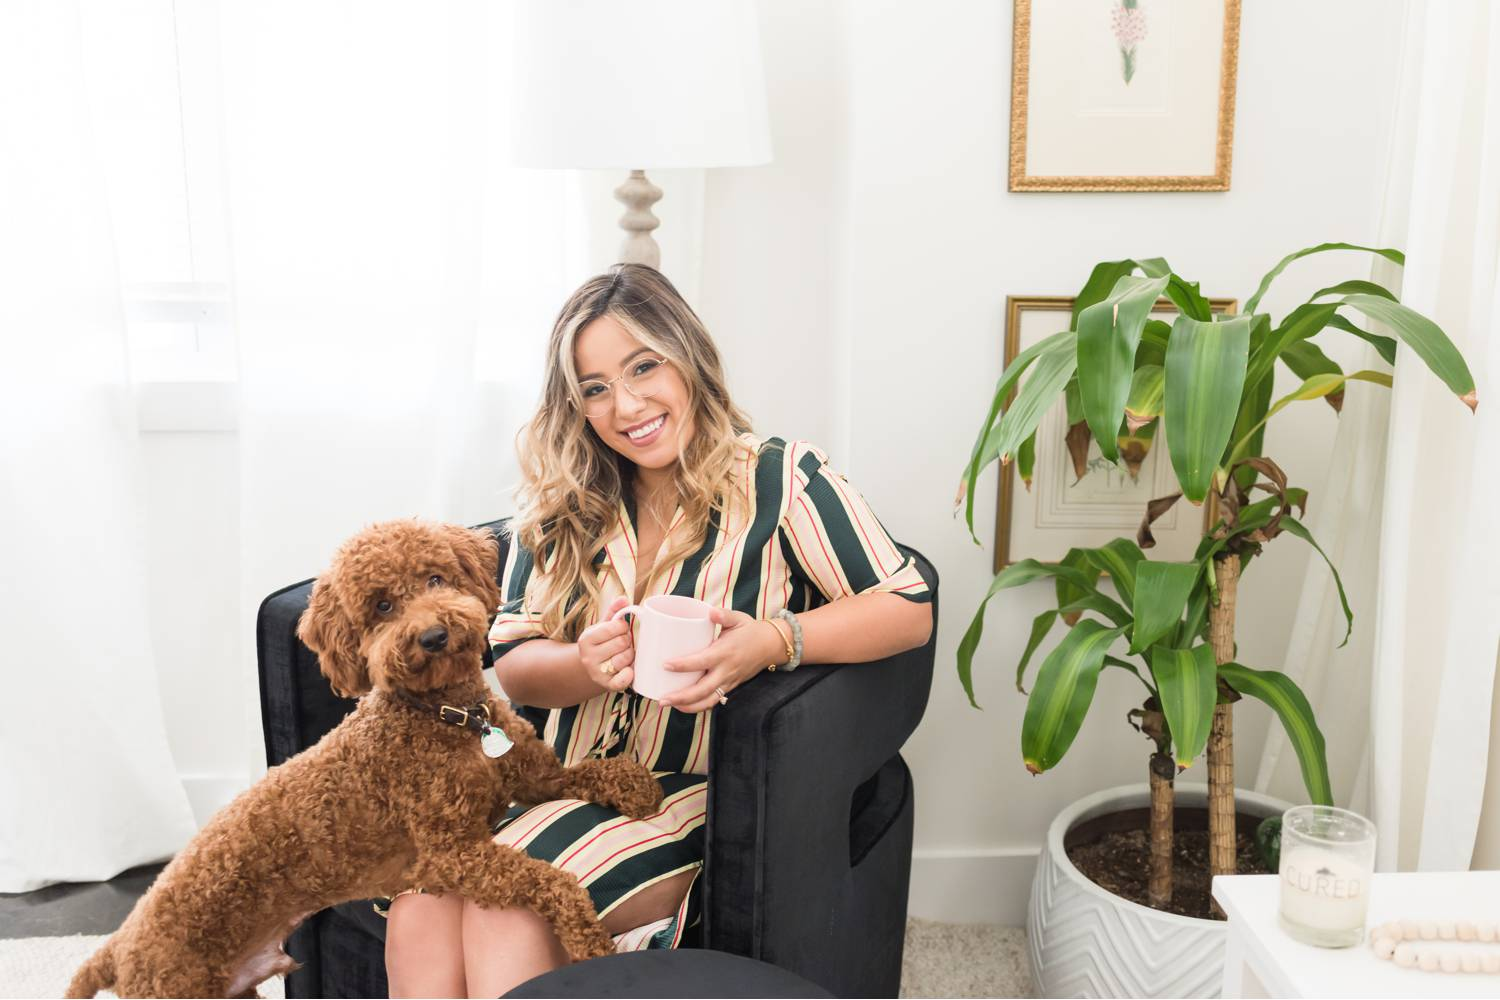 By Mandy Liz: An entrepreneur sits in her office with a mug of coffee. Her dog rests its front legs in her lap. To get great client feedback, you have to be personable!